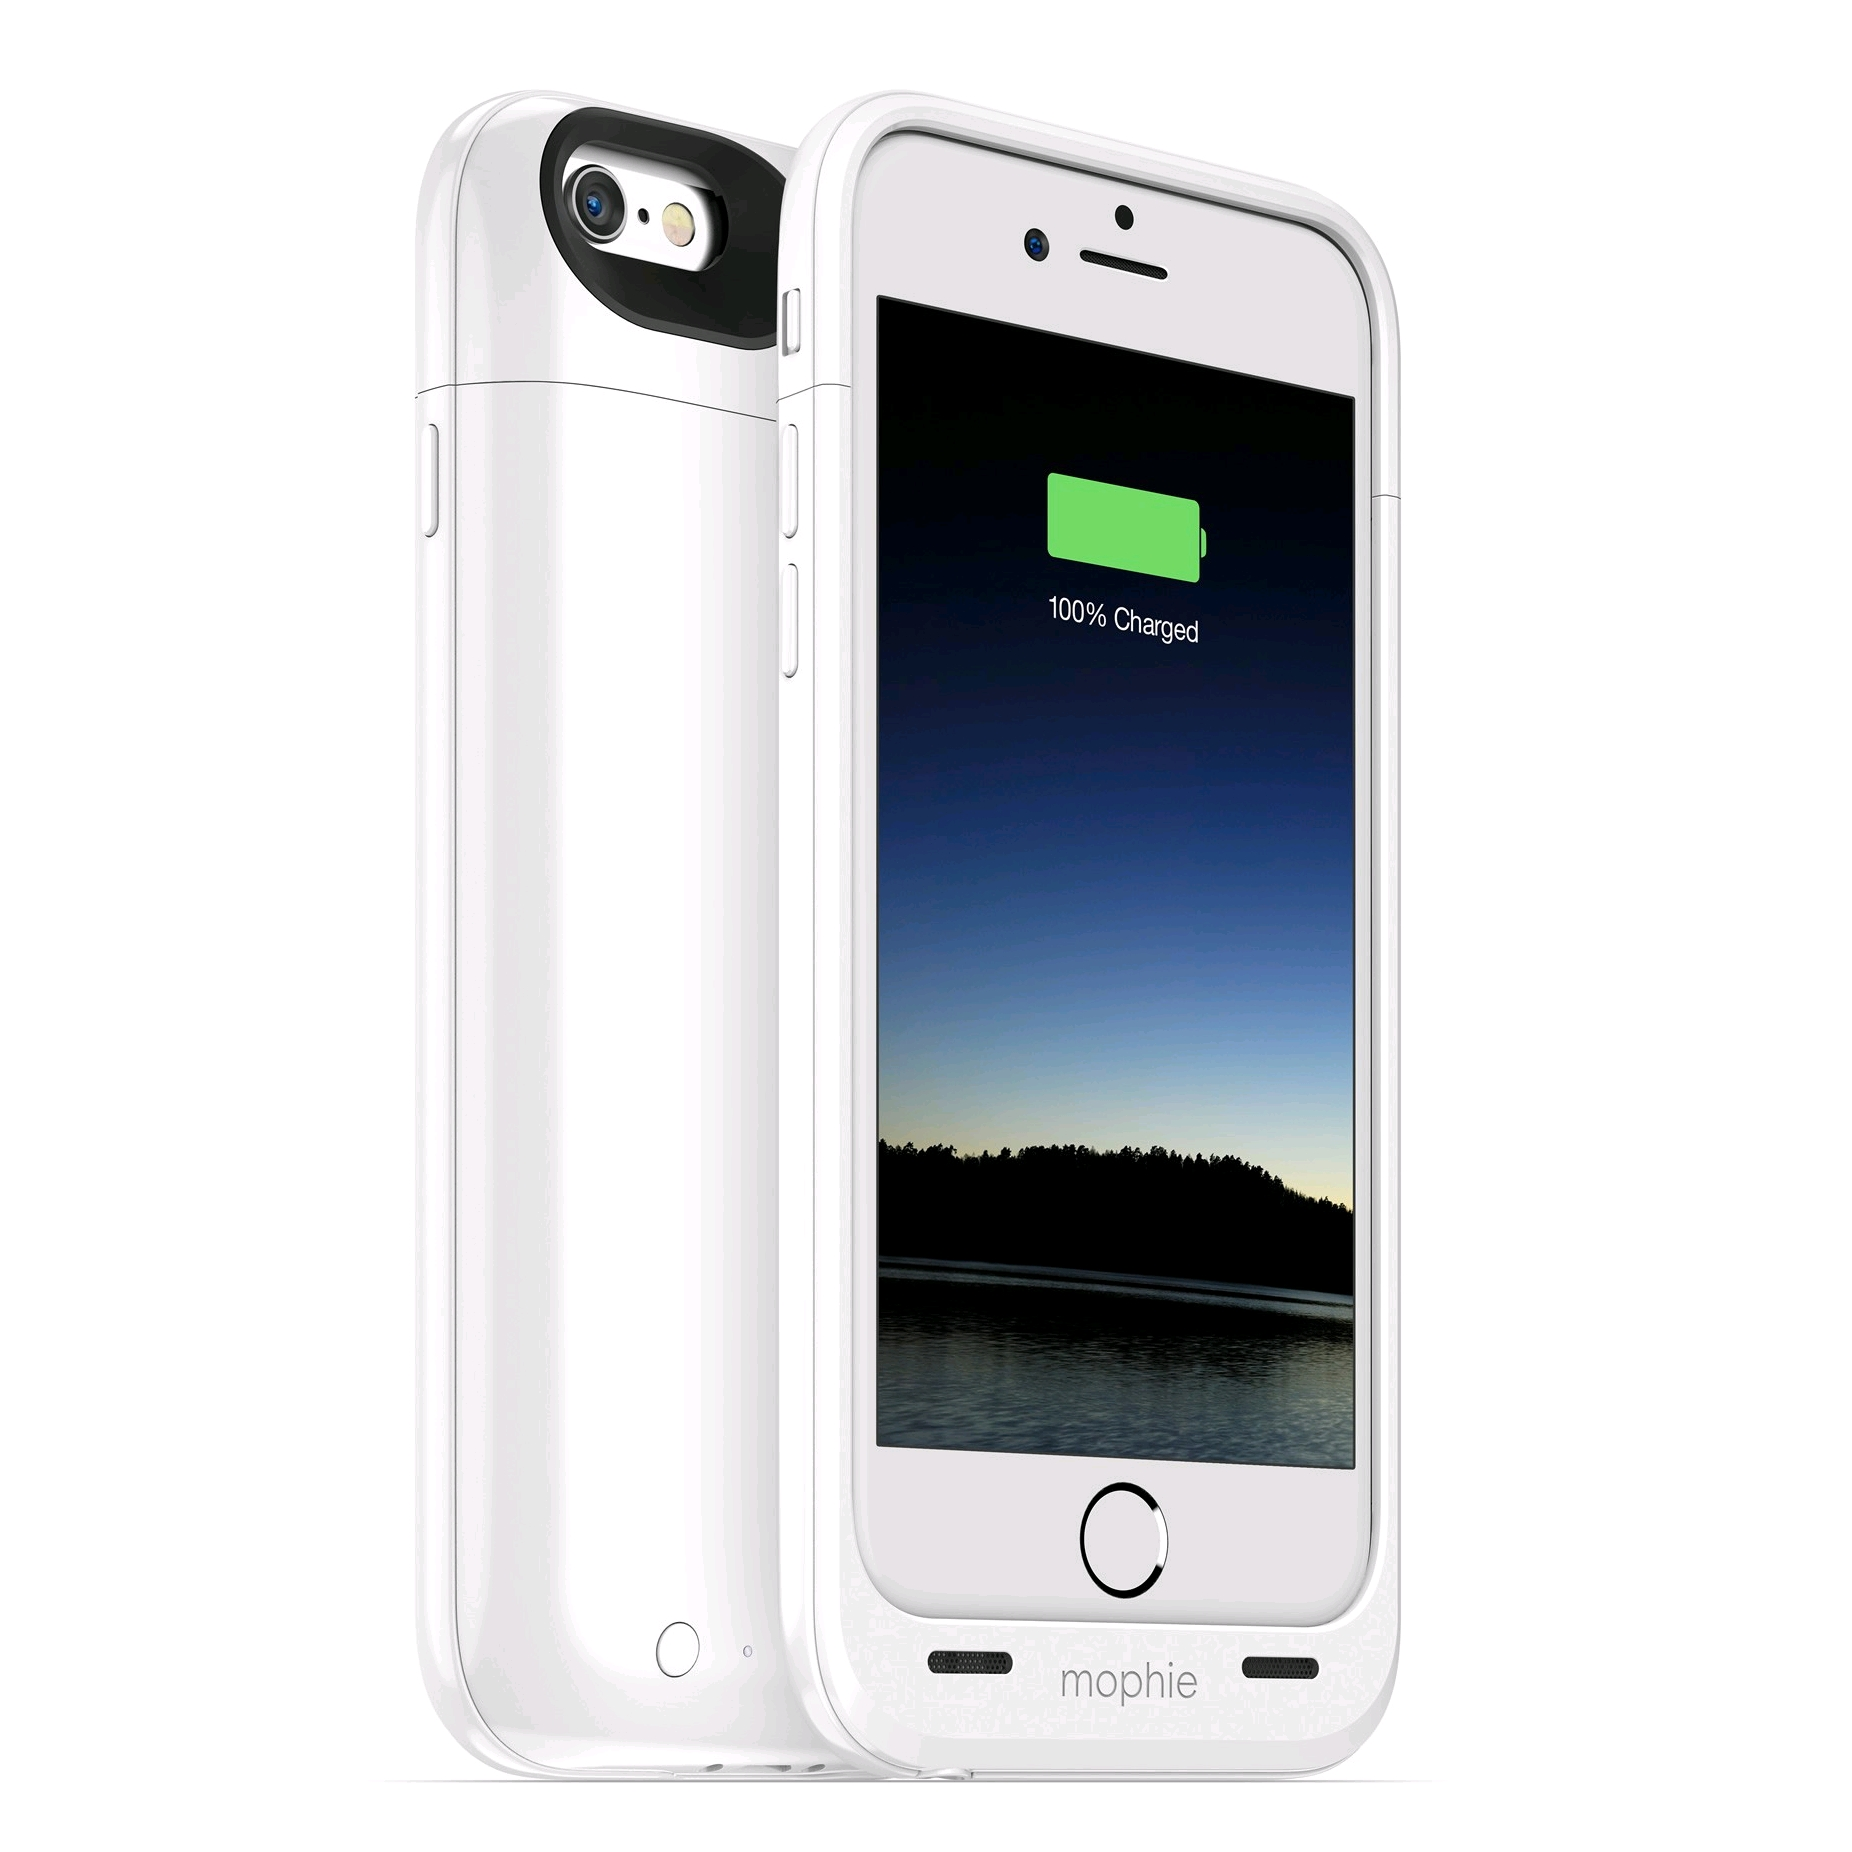 sneakers for cheap 33f0f fbc56 mophie Juice Pack Air for iPhone 6 2750mAh, White